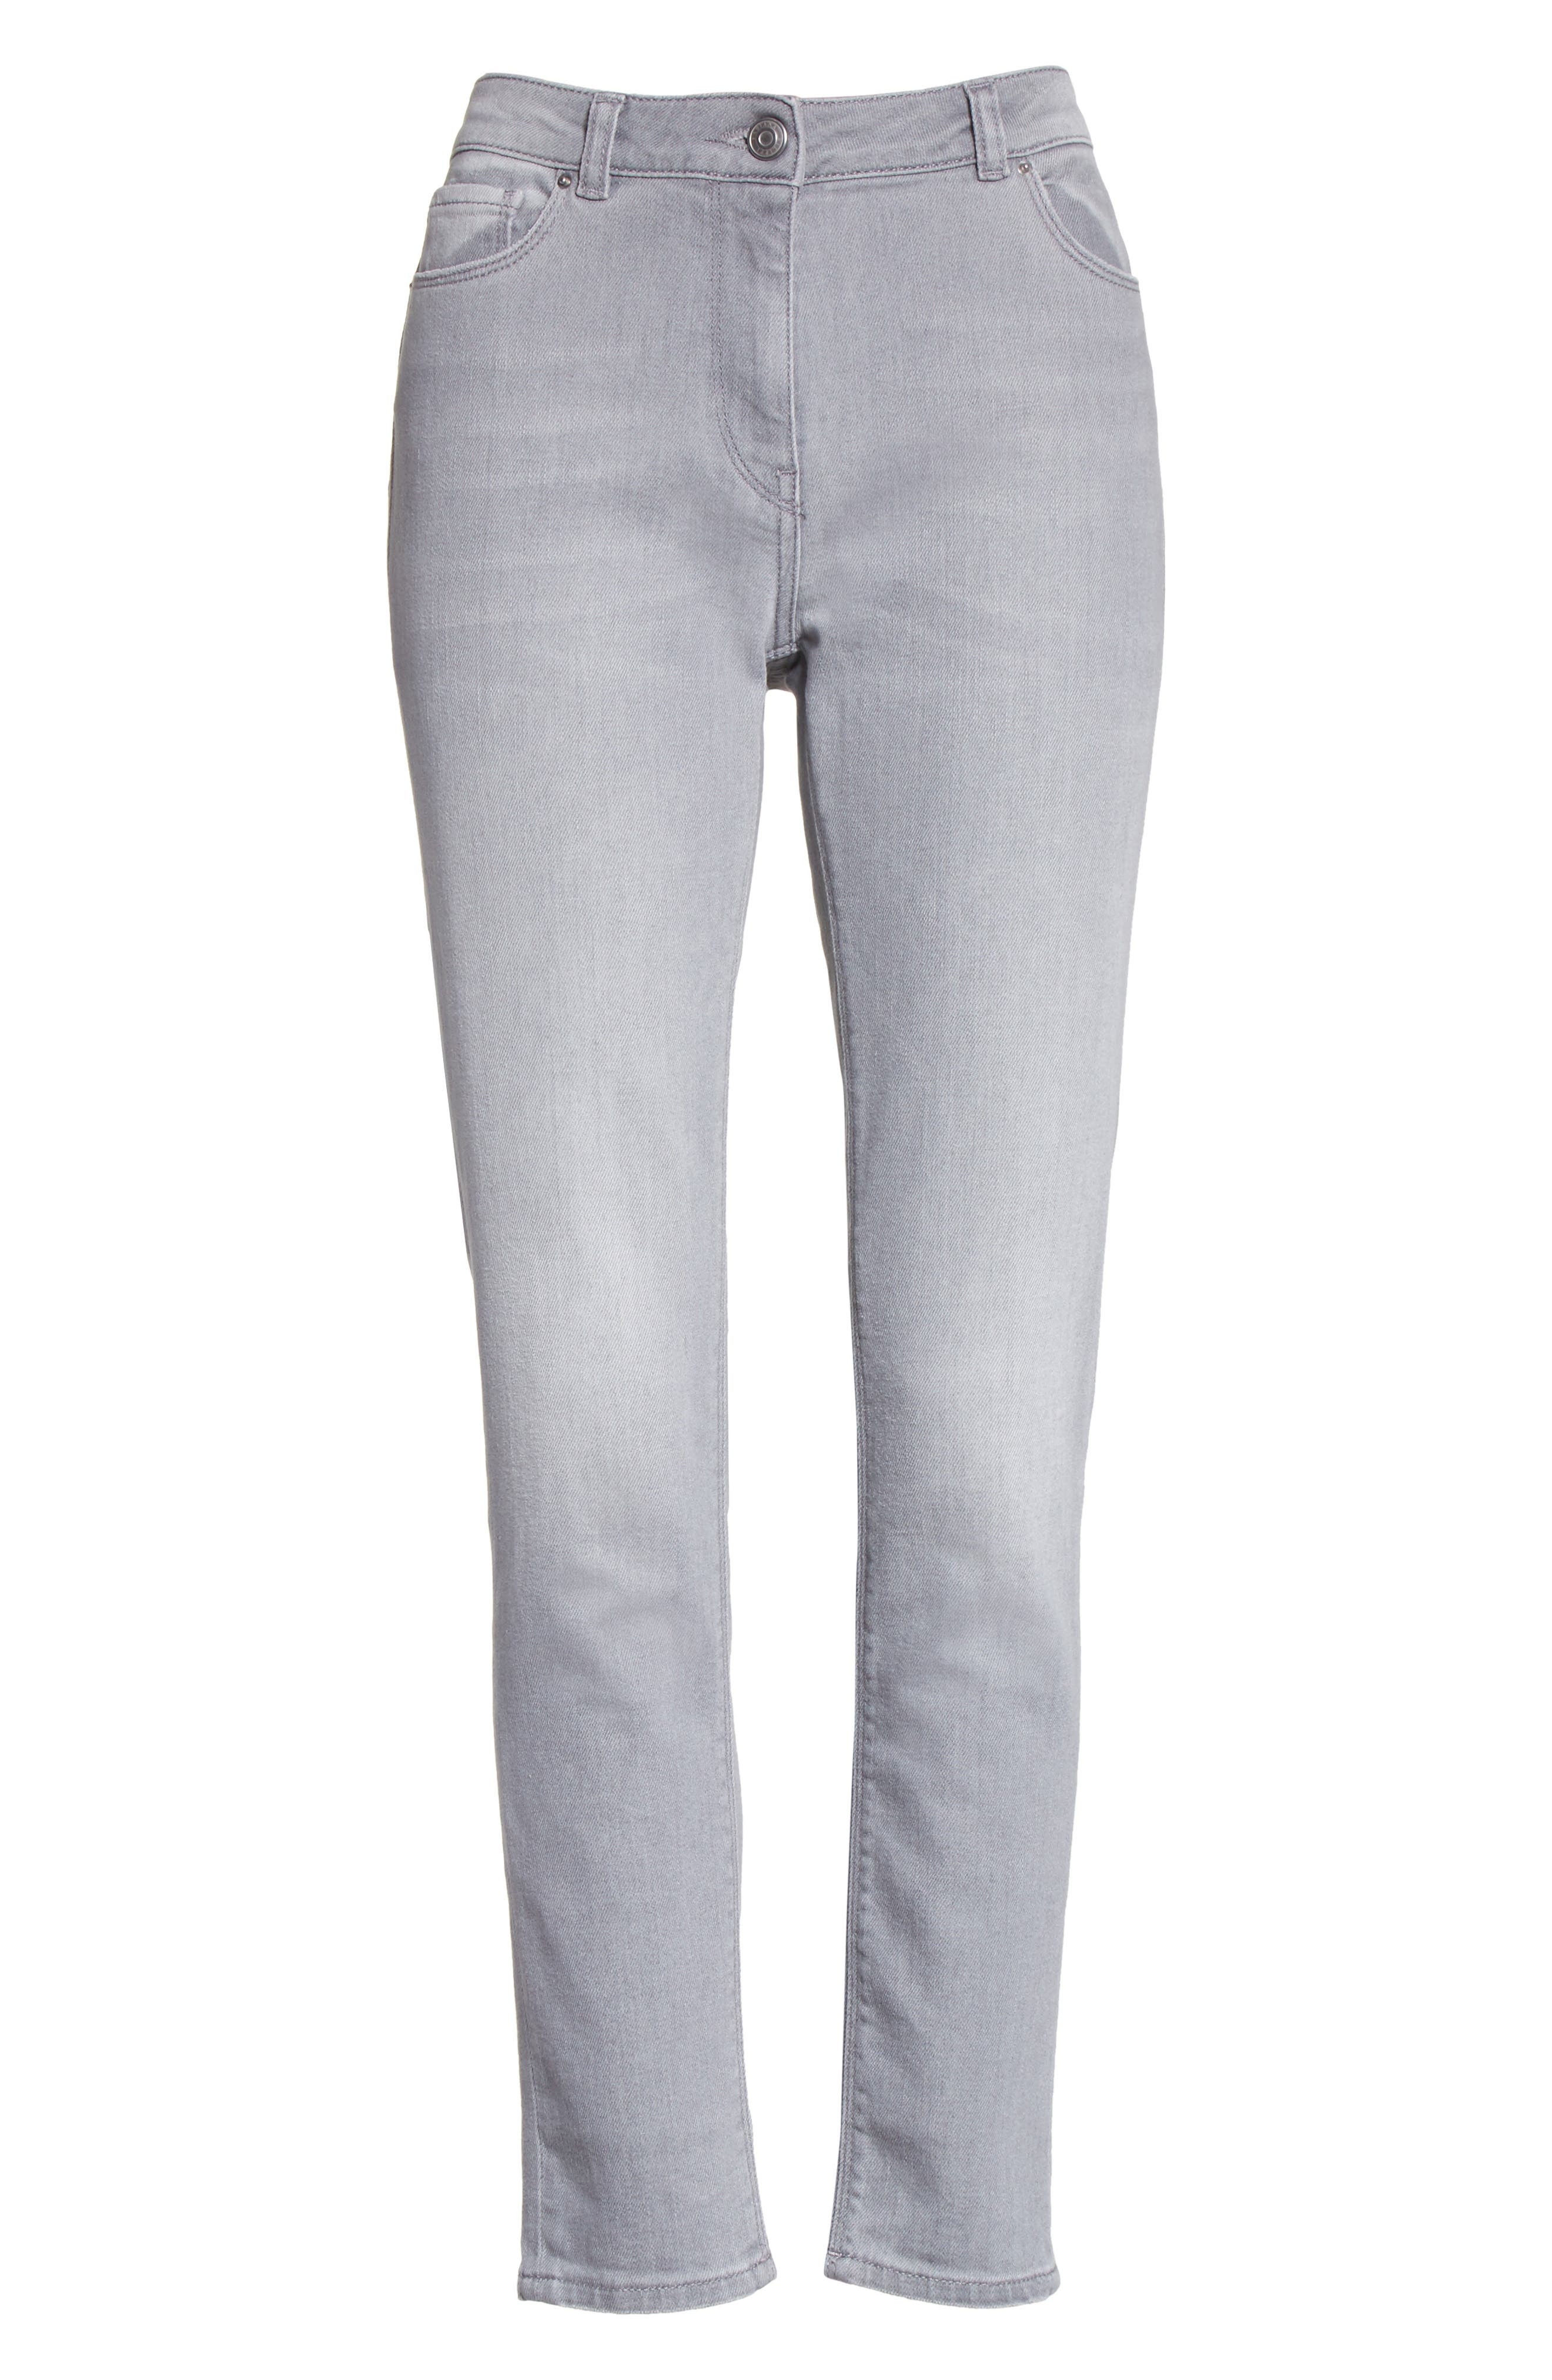 Stretch Skinny Jeans,                             Alternate thumbnail 6, color,                             020